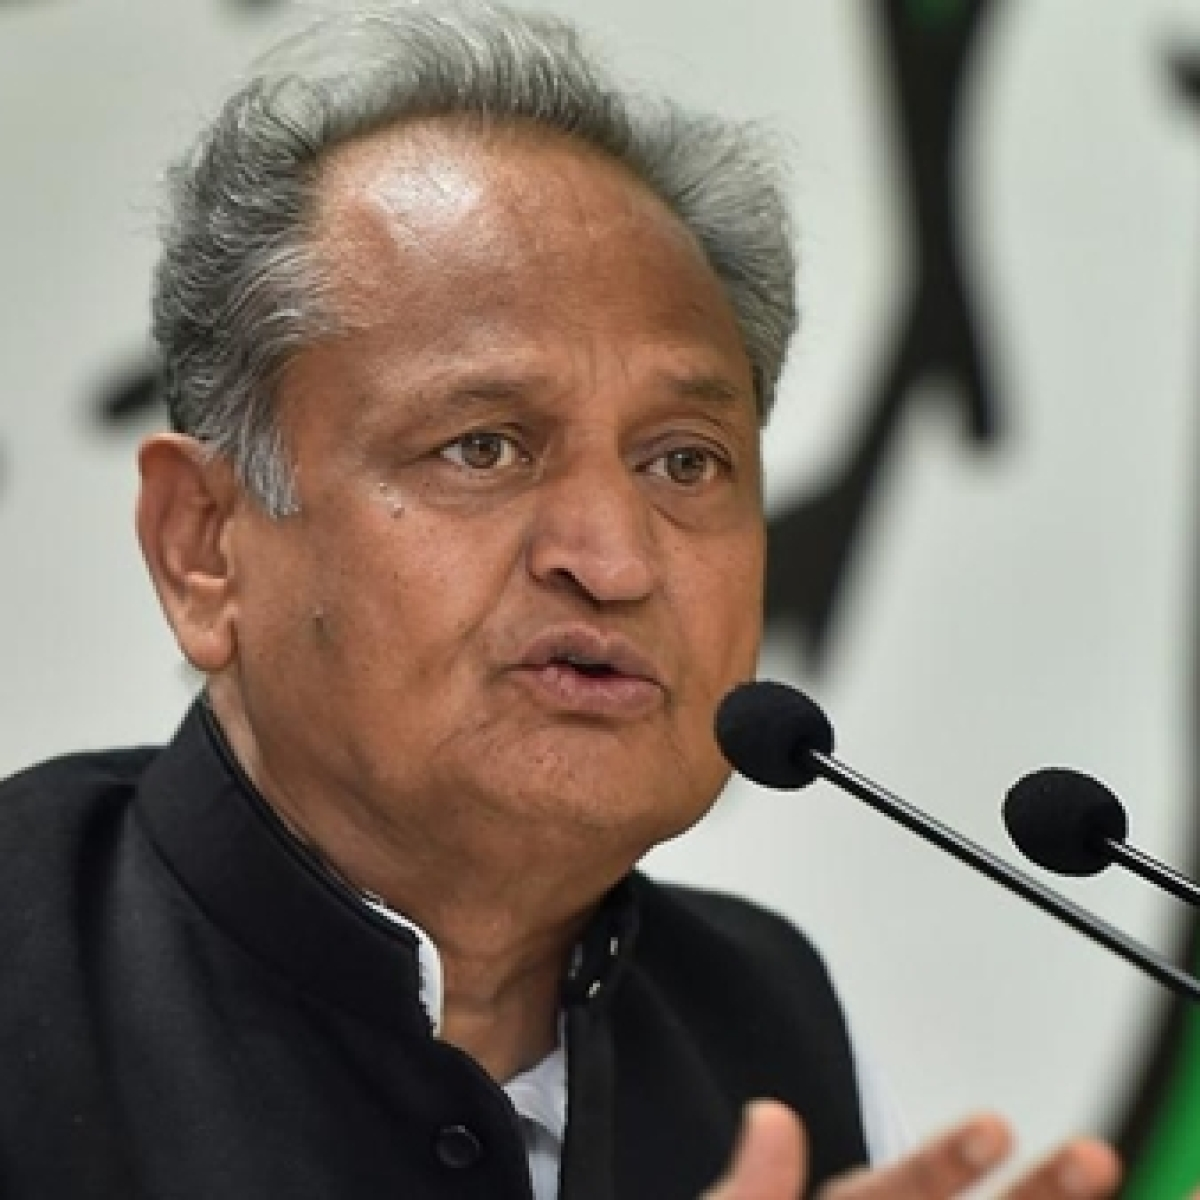 'Culprits will be punished as per law': Raj CM Ashok Gehlot on 2 Dalits being thrashed